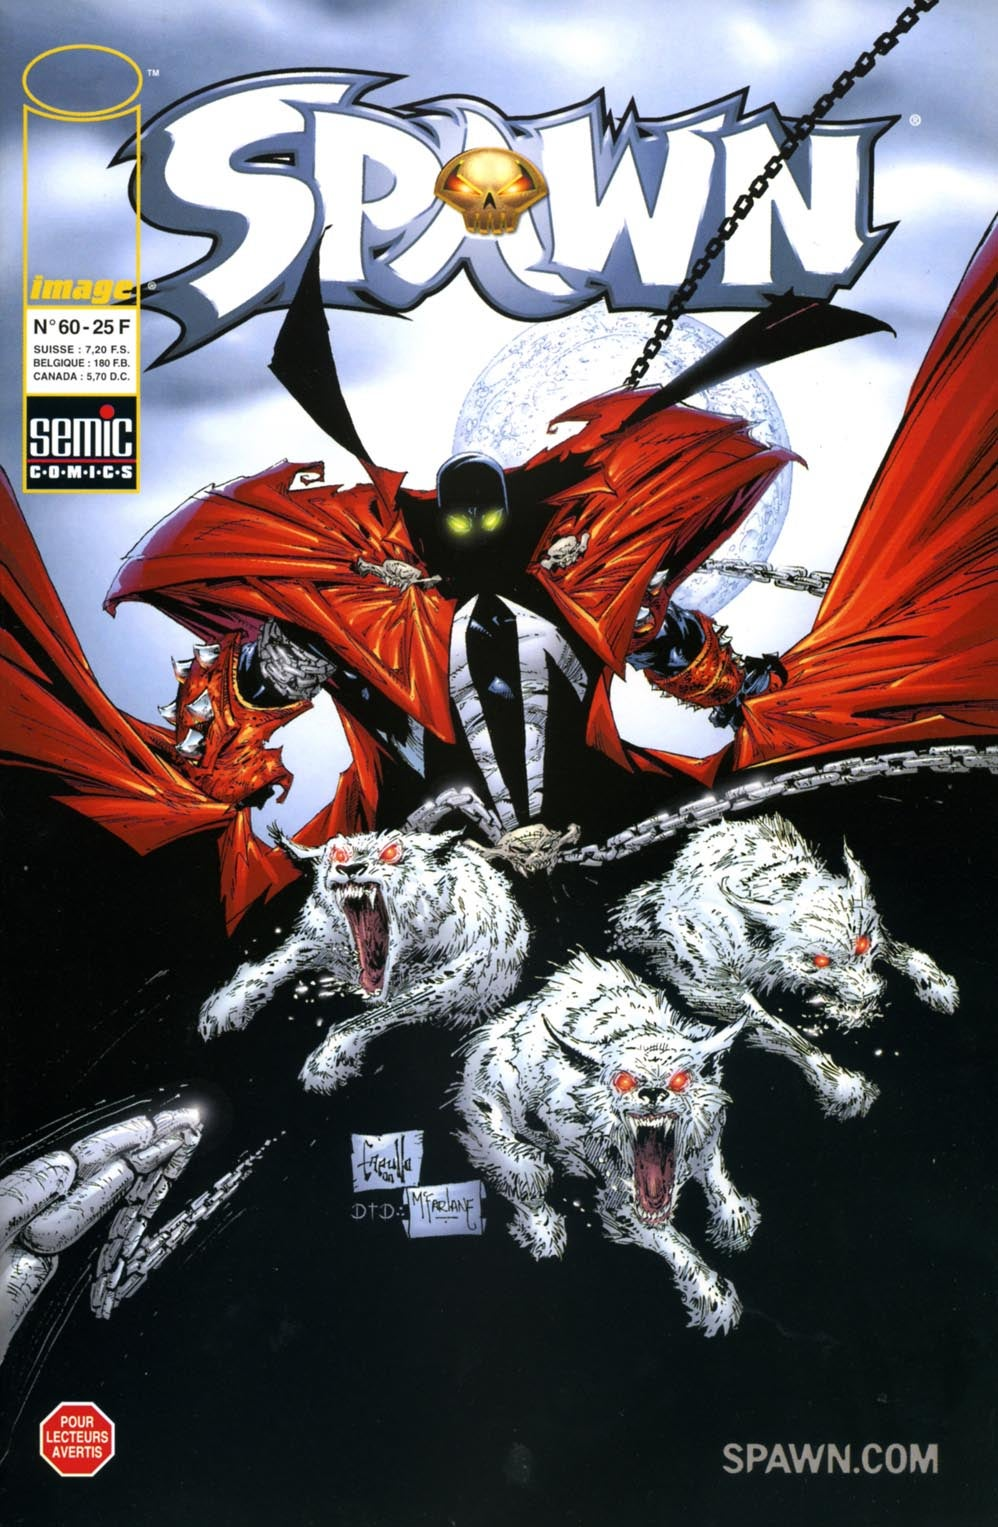 the ideology issues of the movie one spawn Enjoy the videos and music you love, upload original content, and share it all with friends, family, and the world on youtube.